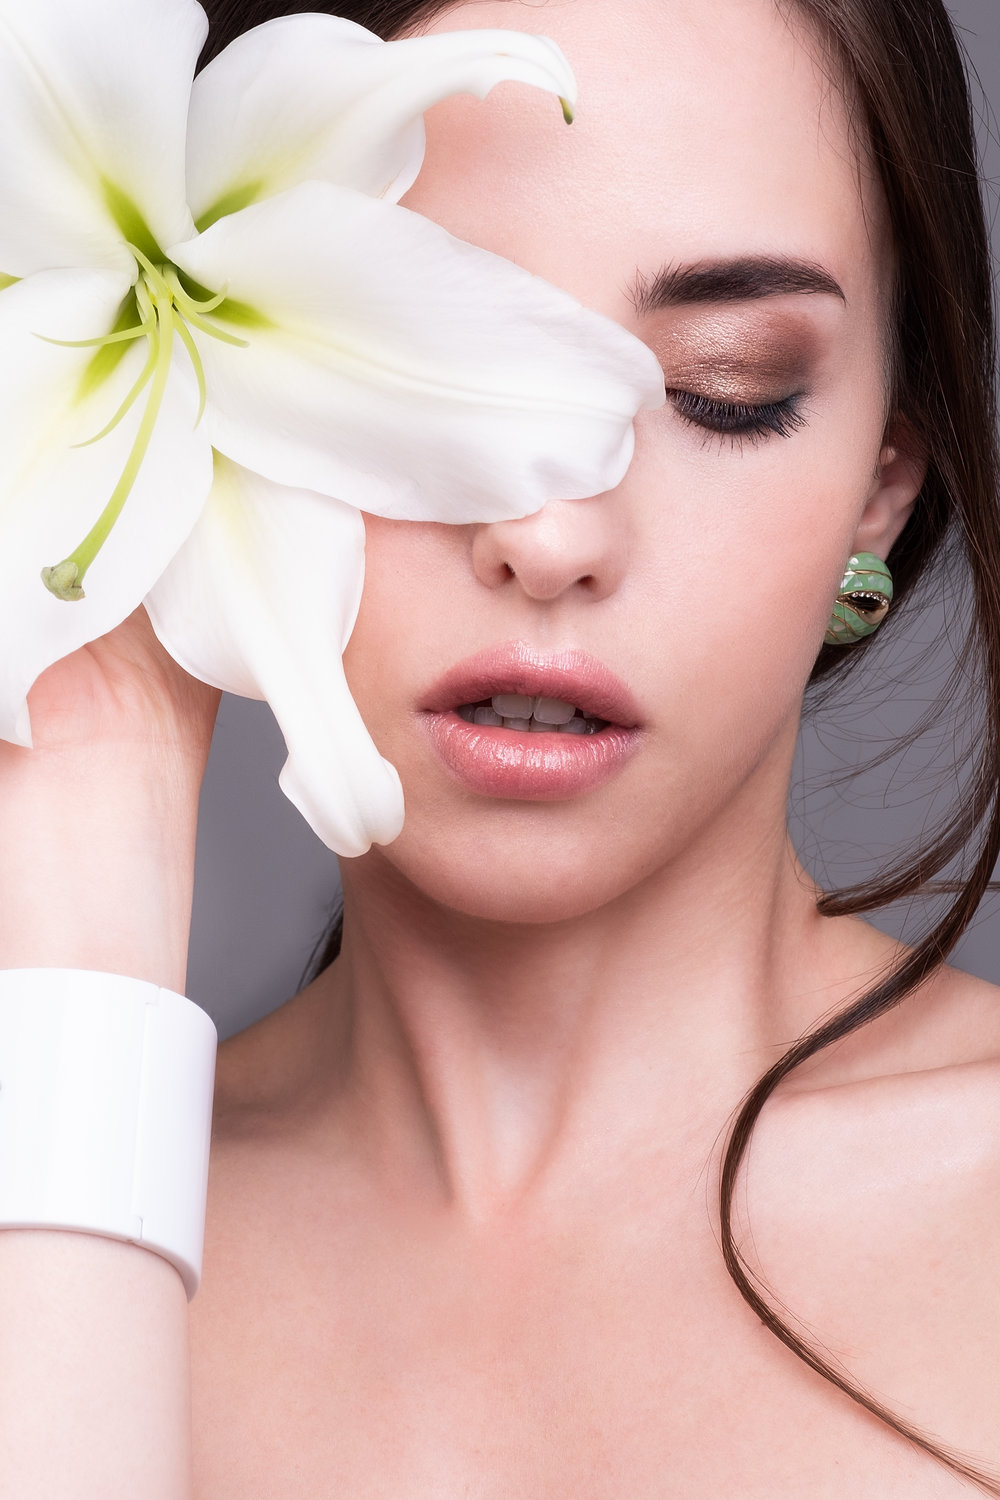 FLOWERS BEAUTY - SHEEBA MAGAZINE  Model: Giusy Reina - MUA/Hair/Concept Eleonora Eilythia